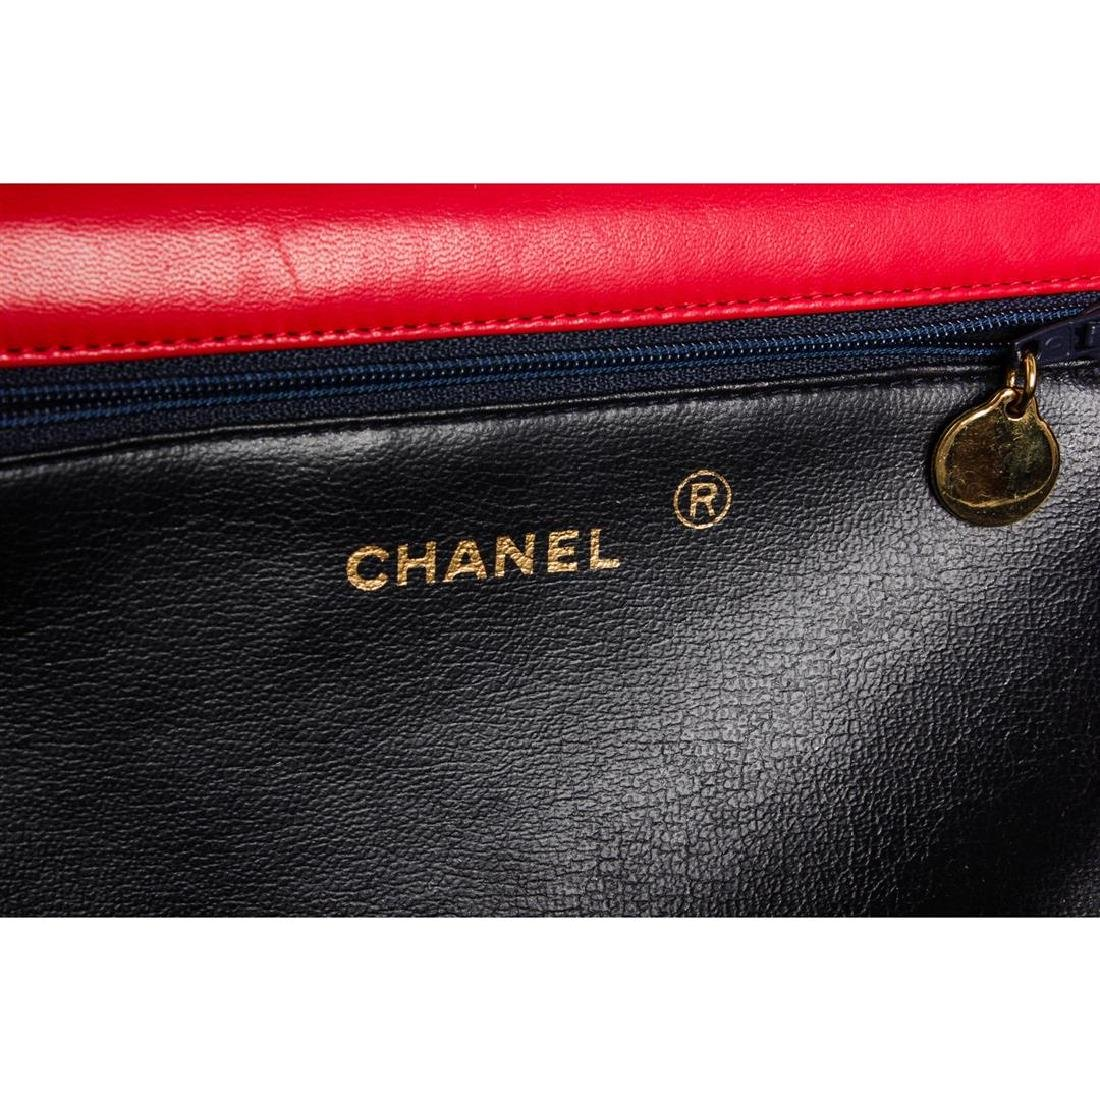 Chanel Red Quilted Lambskin Leather Flap Shoulder - 8